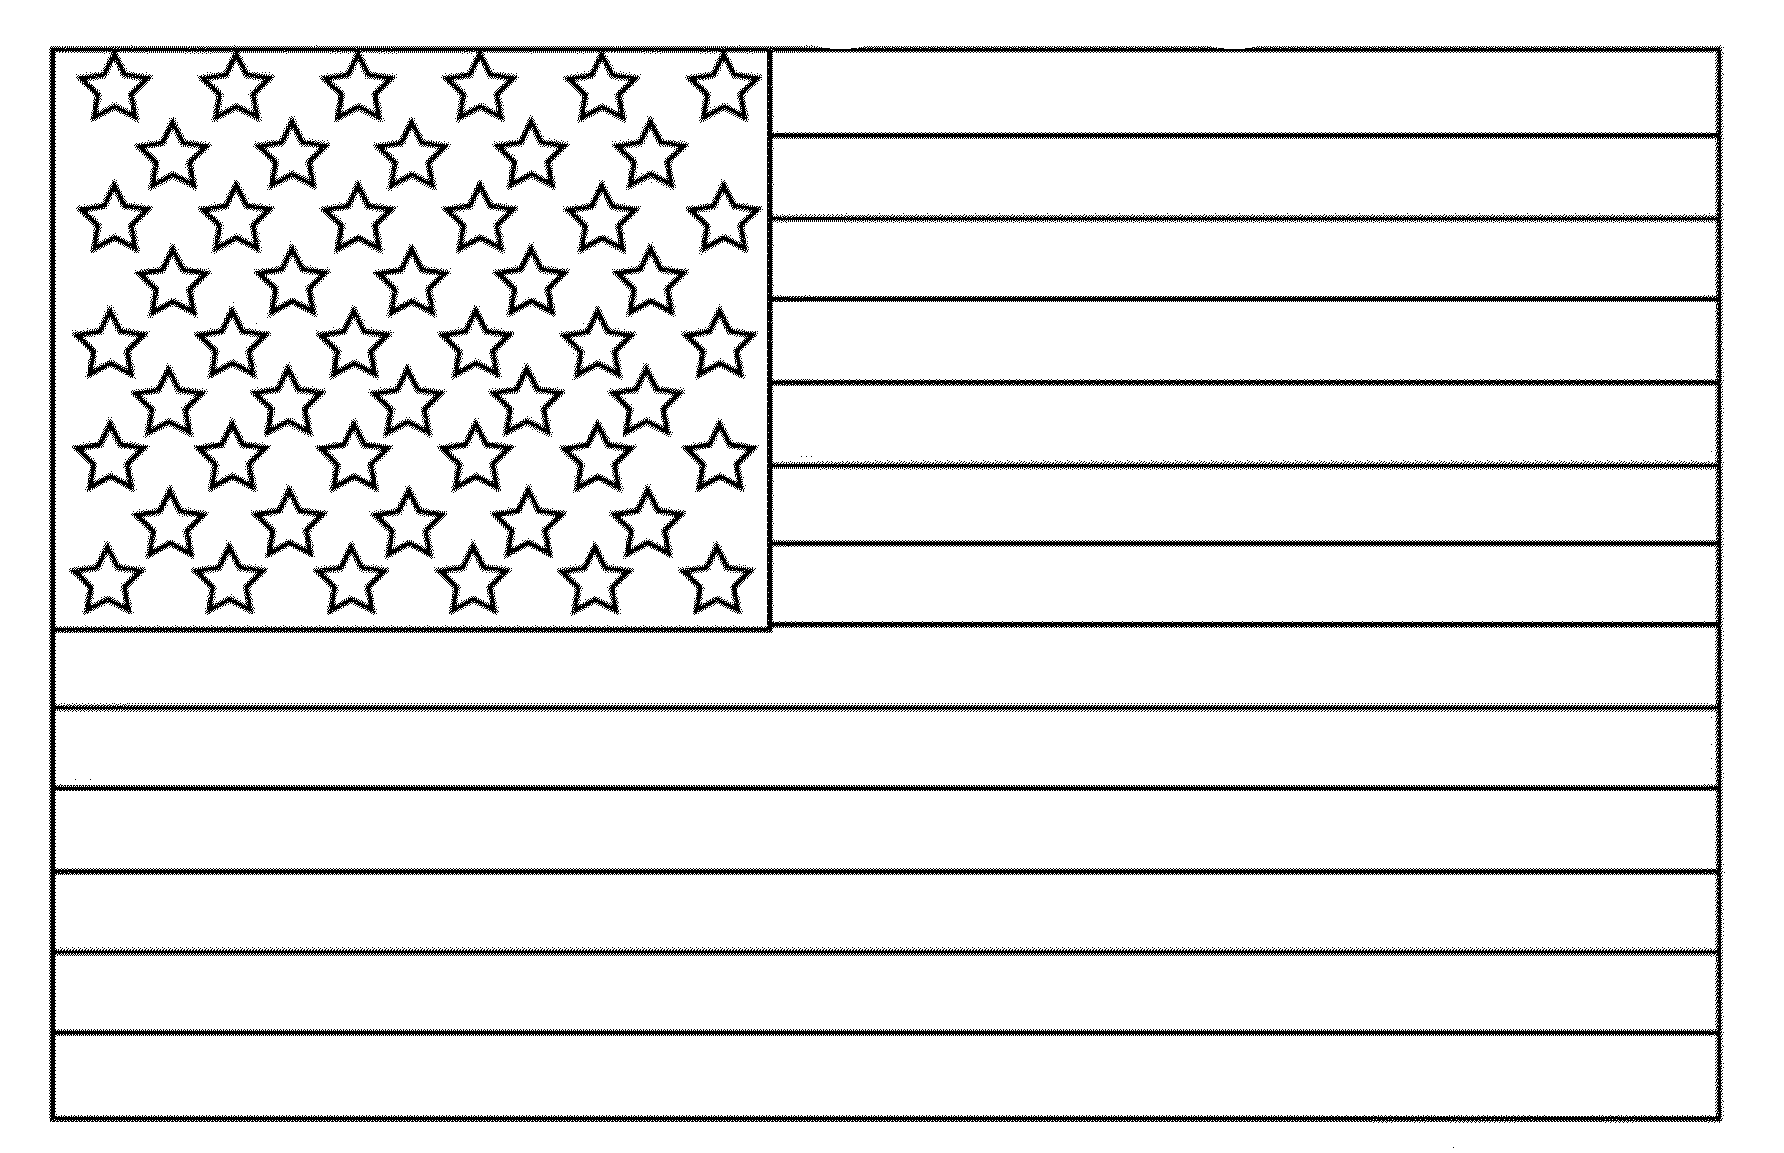 coloring pages of flags flag coloring pages to download and print for free flags of pages coloring